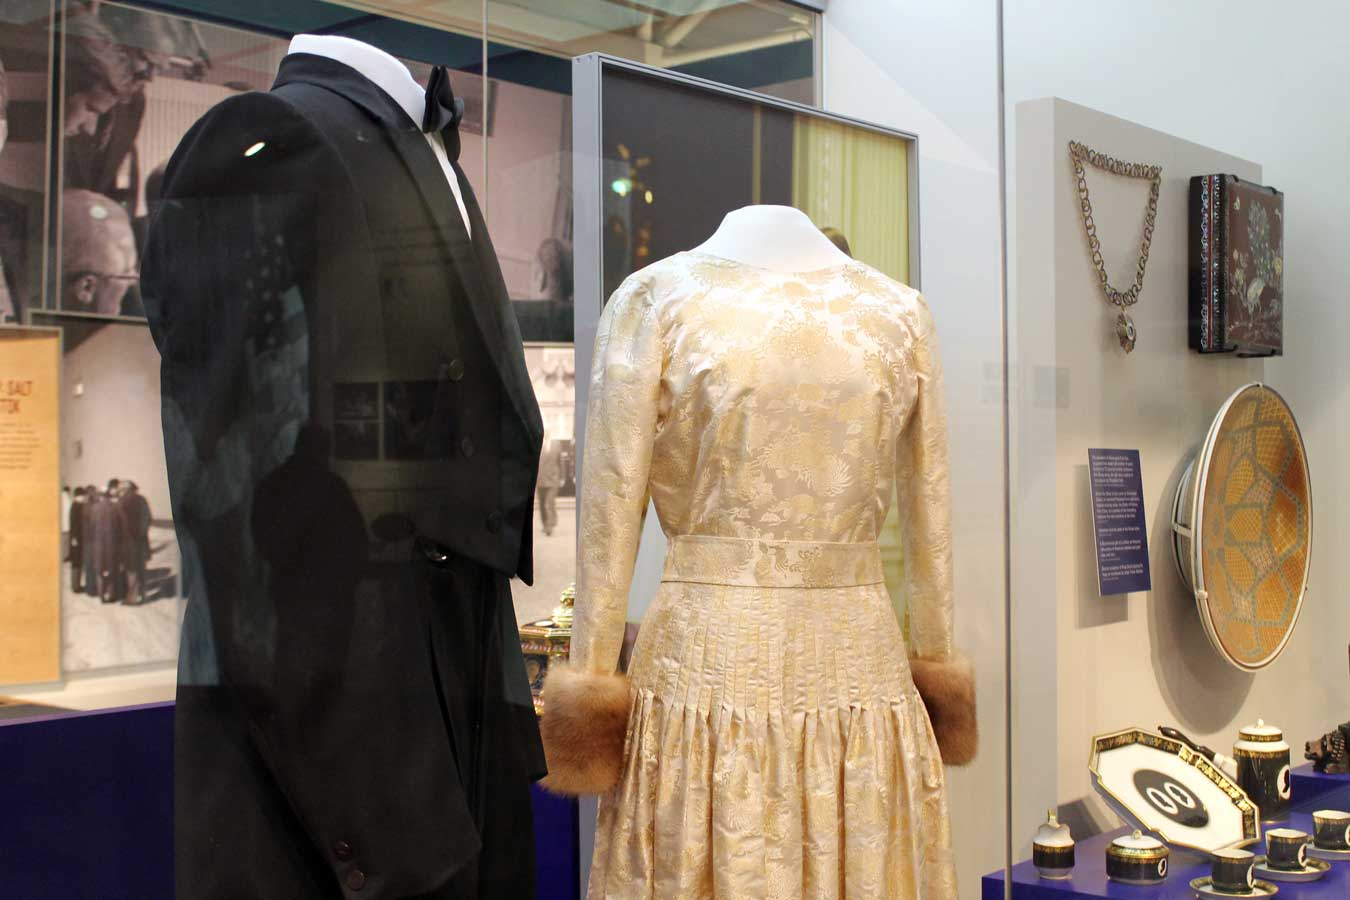 Banquet Attire Worn By Gerald Ford & Betty Ford - See in person at the Gerald R. Ford Presidential Museum in Grand Rapids, Michigan /// Gerald R. Ford Presidential Museum: Legacy Of An Unelected President - (via Wading in Big Shoes)